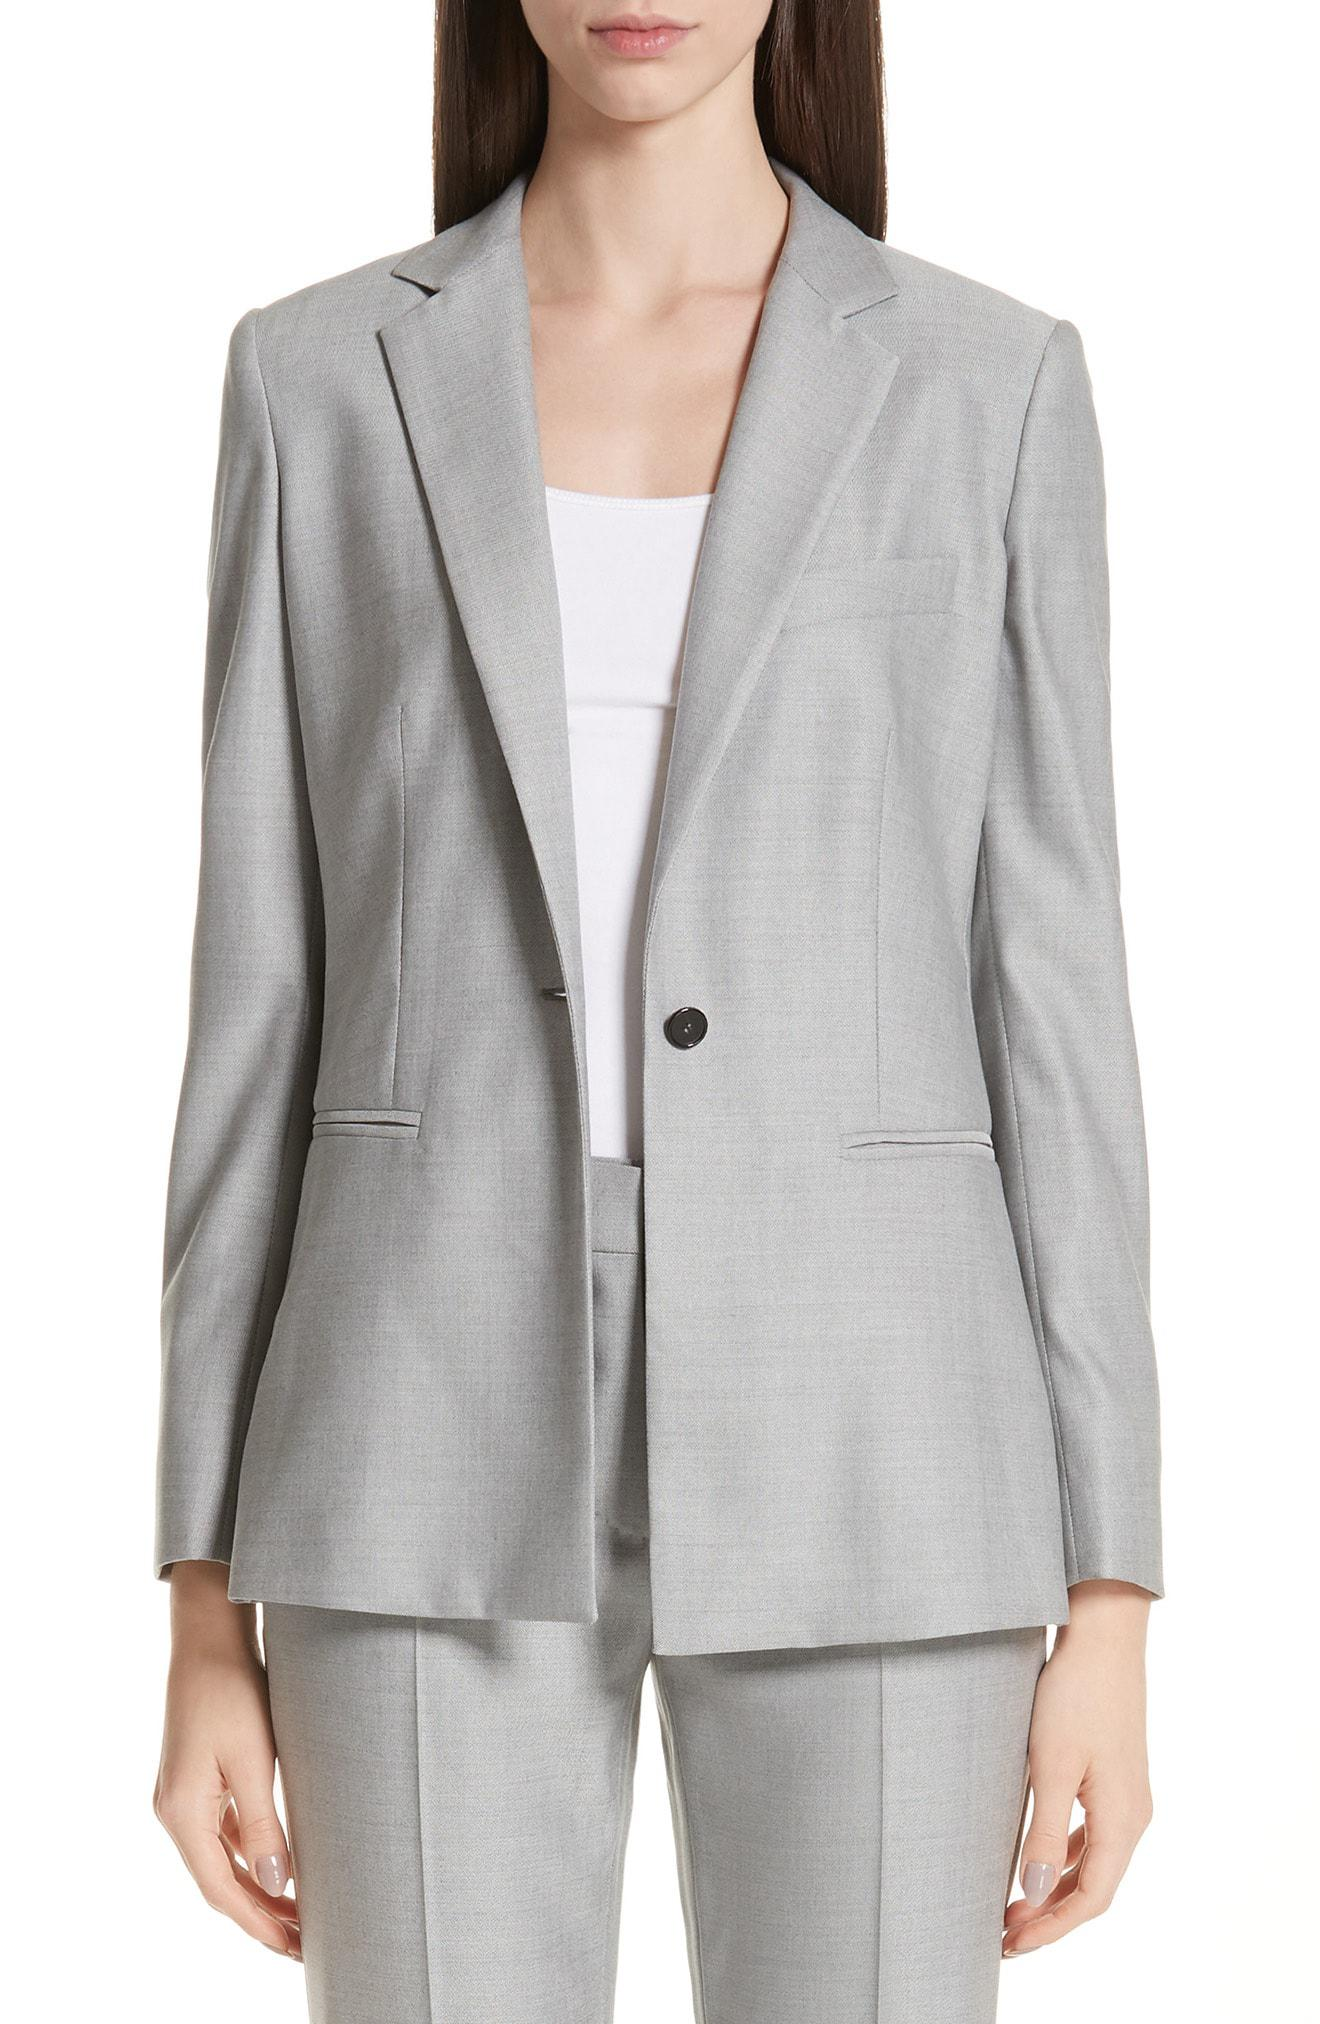 e07b1a6f90b3 Max Mara Tosca Stretch Wool & Silk Jacket in Gray - Lyst